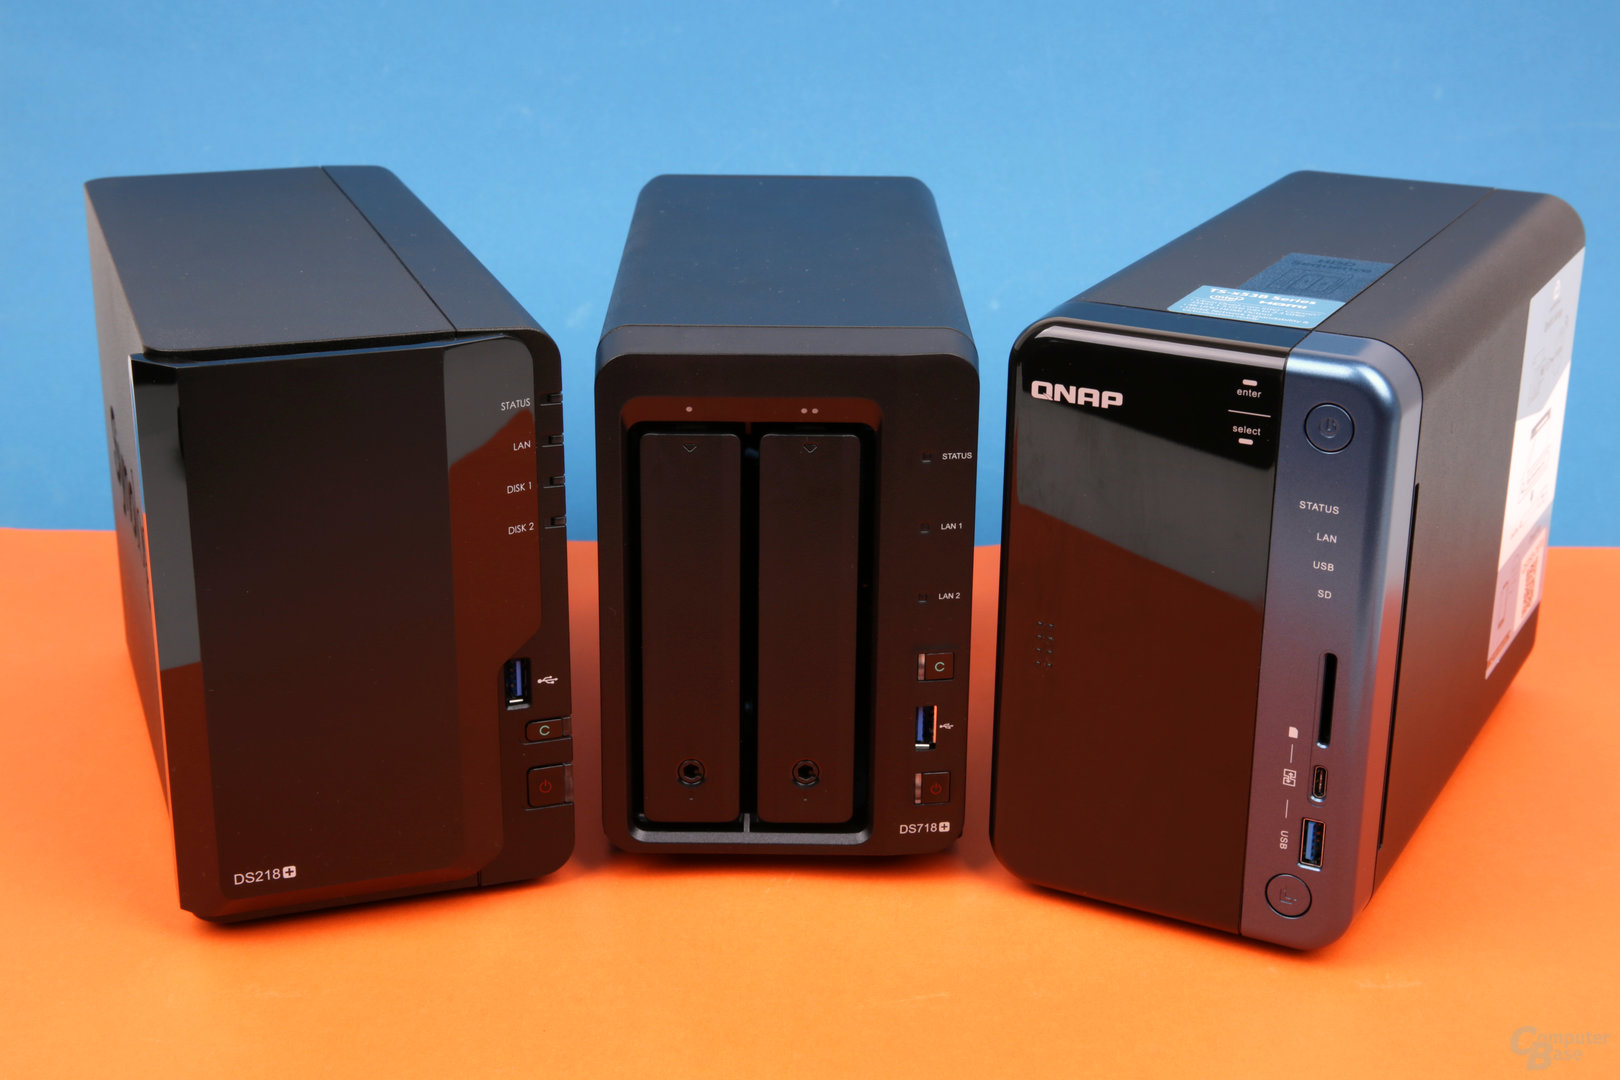 Synology DS218+, DS218+ und QNAP TS-253B